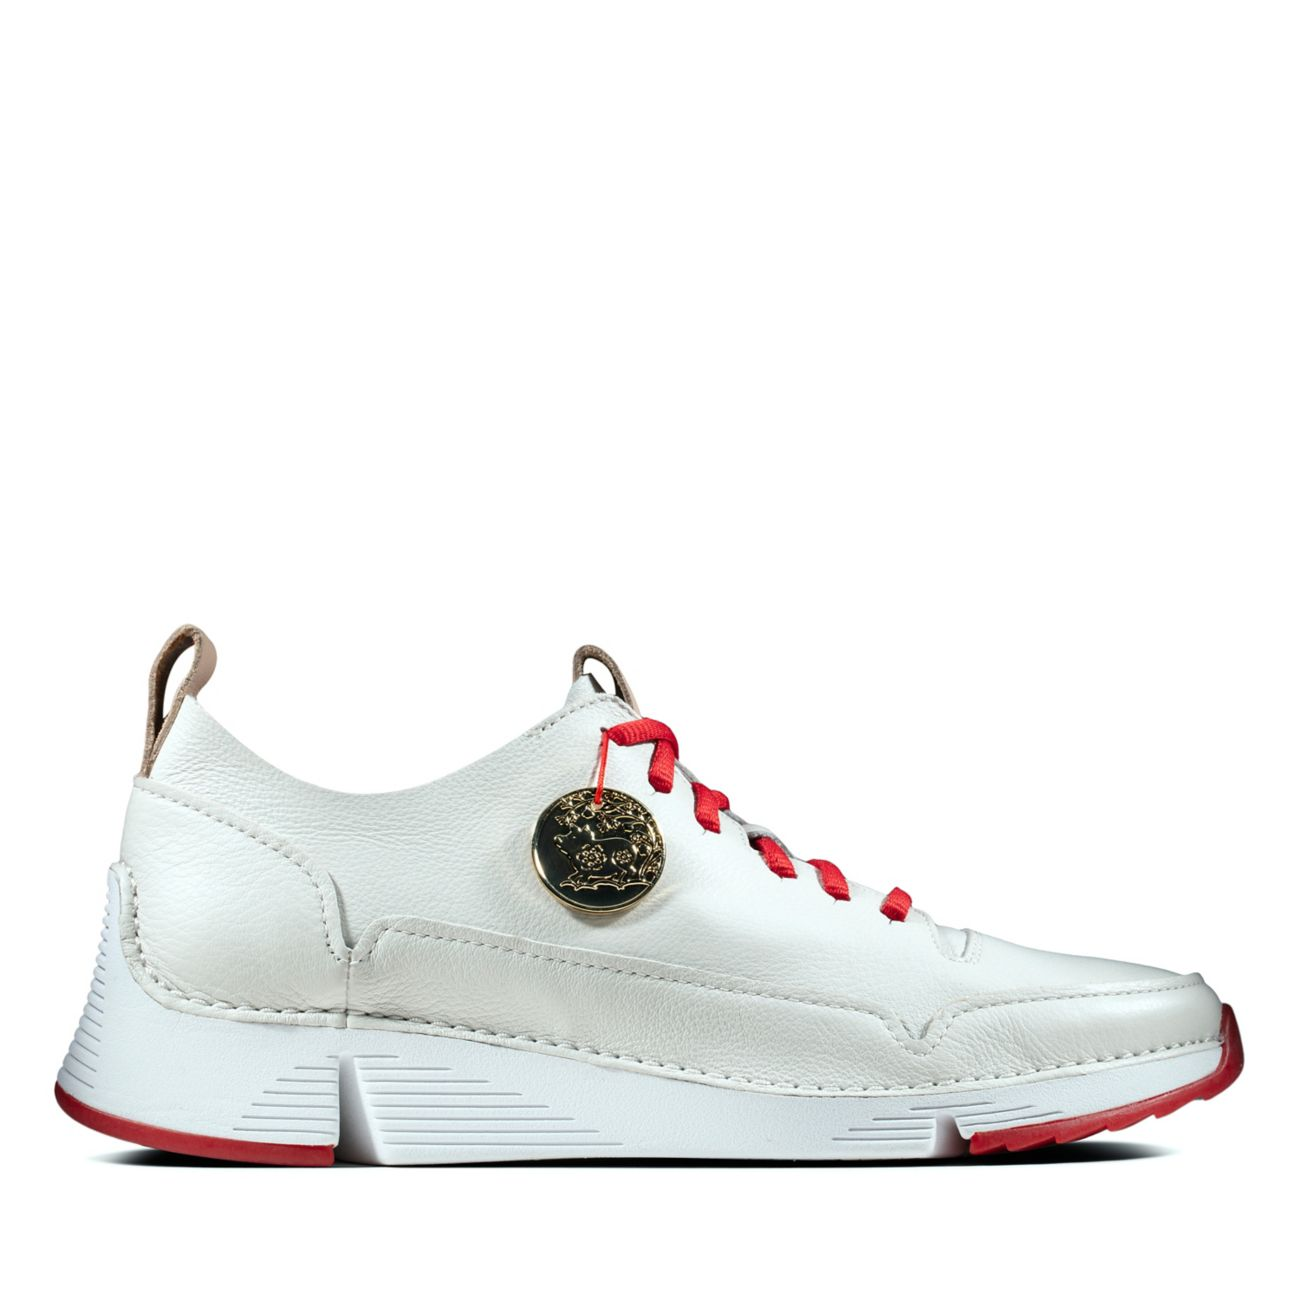 f40b8fabc Tri Spark. White/Red - Womens Sneakers - Clarks® Shoes Official Site ...